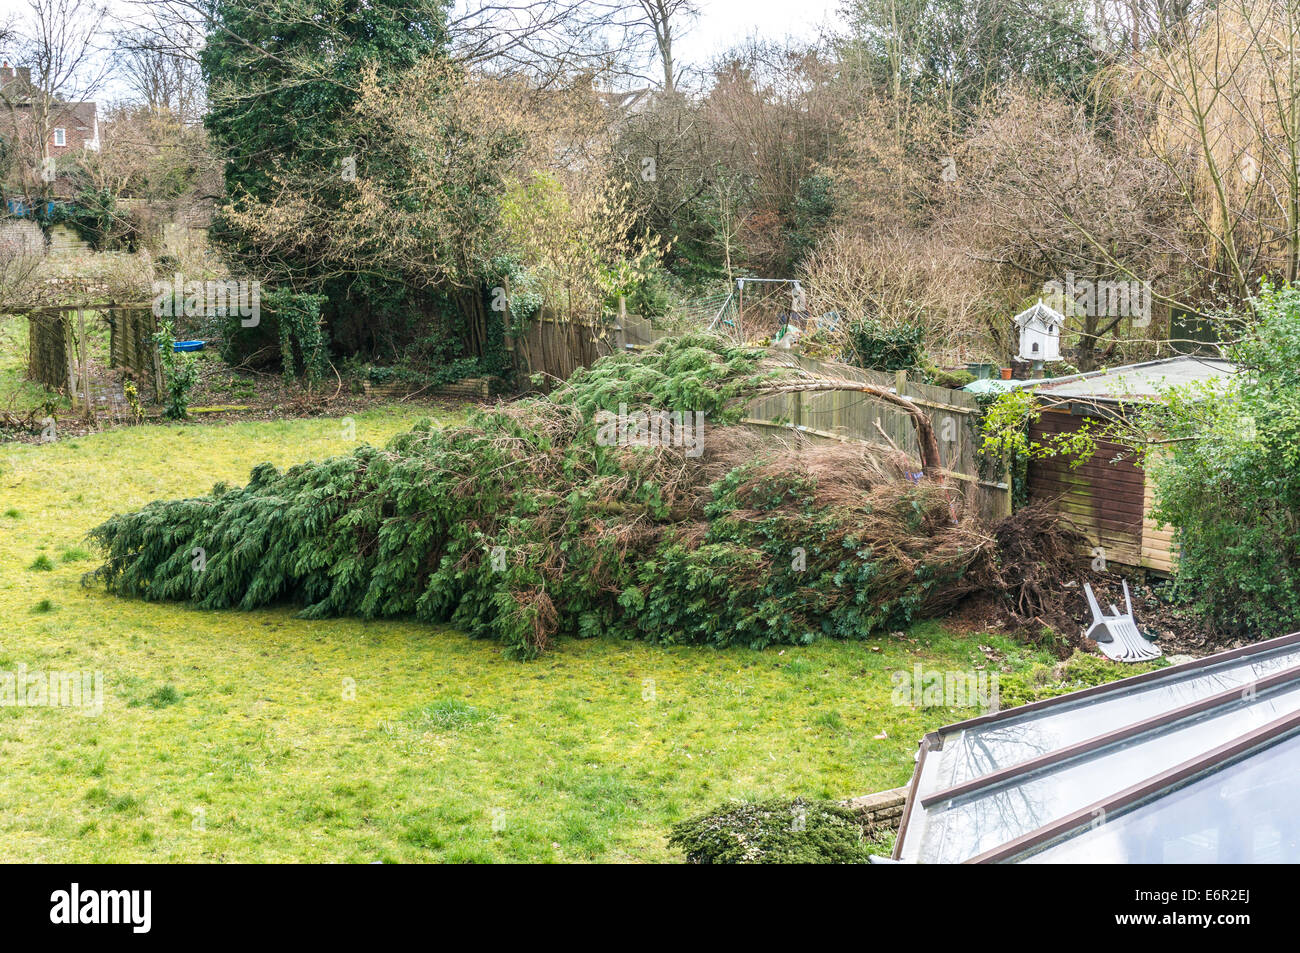 An uprooted conifer lies across a suburban back garden, having been blown down in a storm. Epsom, Surrey, England, - Stock Image